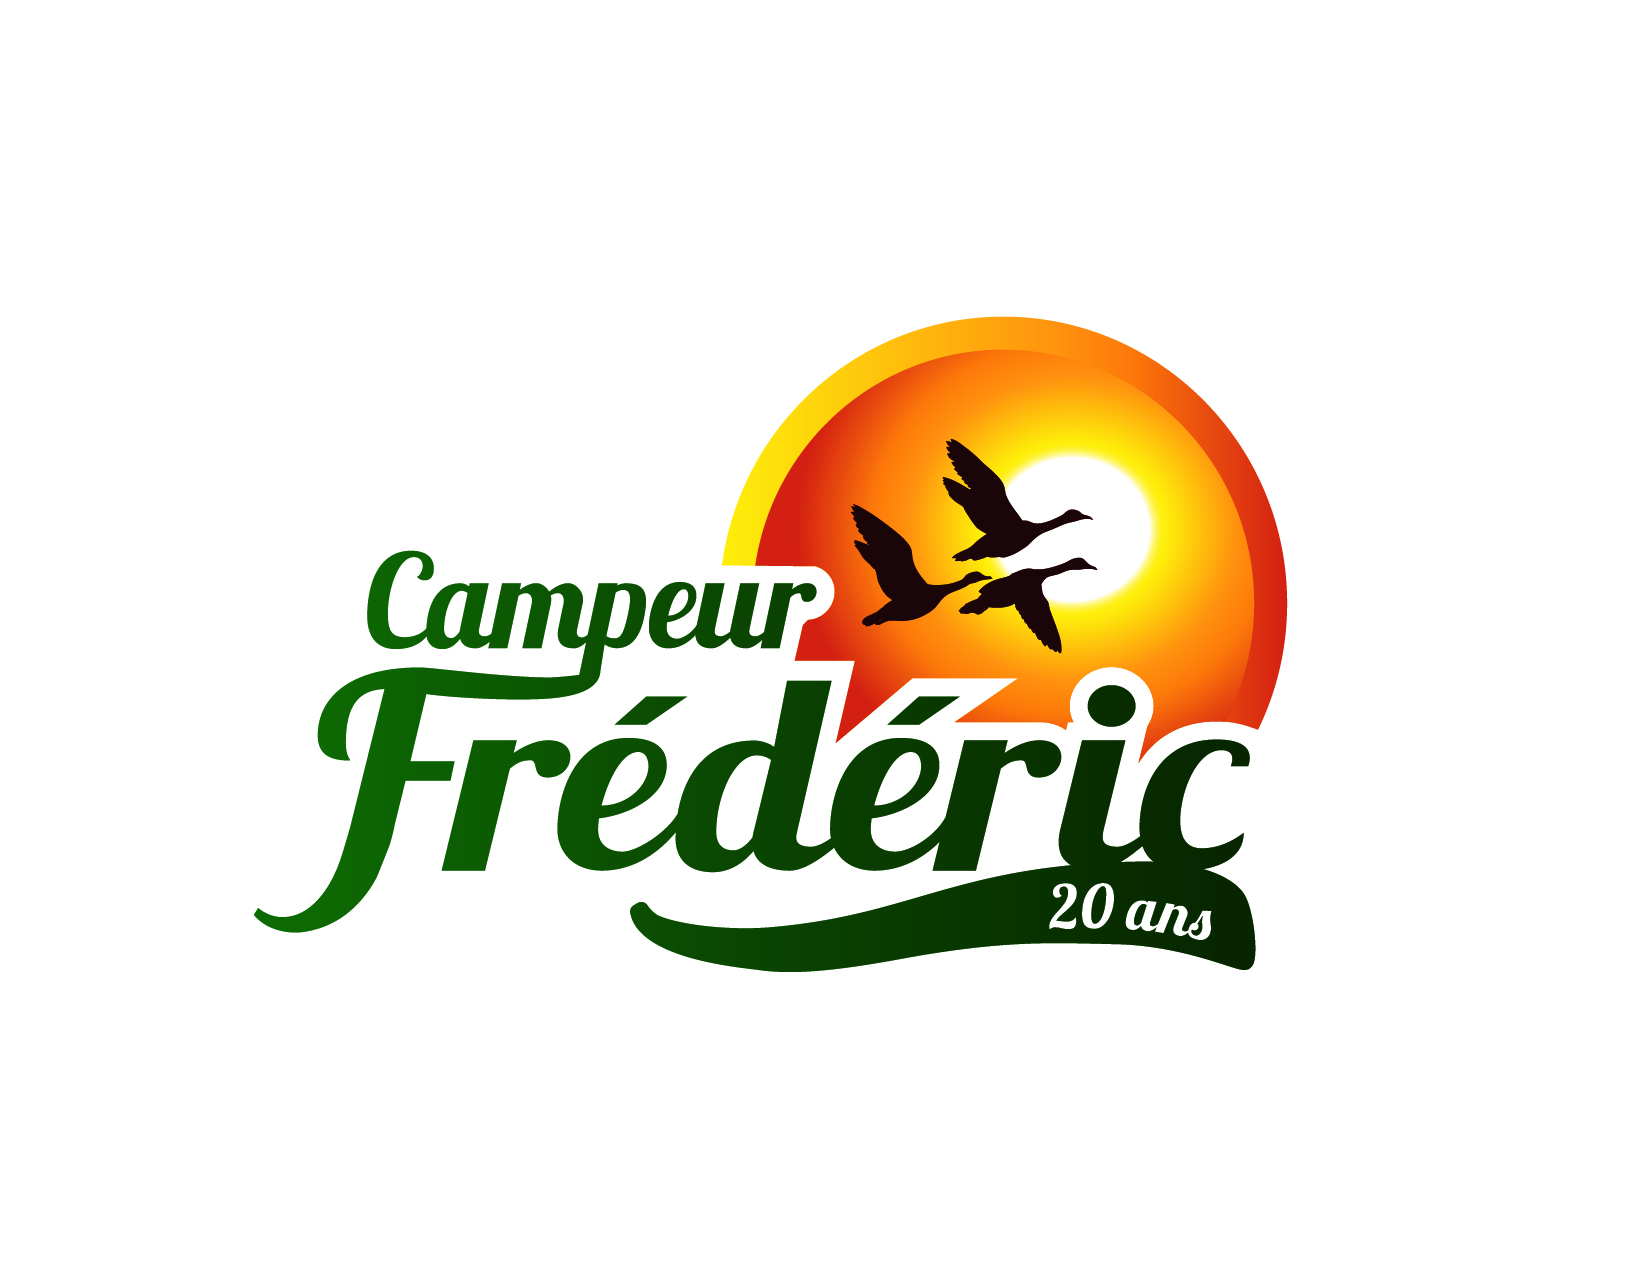 logo Campeurs frederic inc.